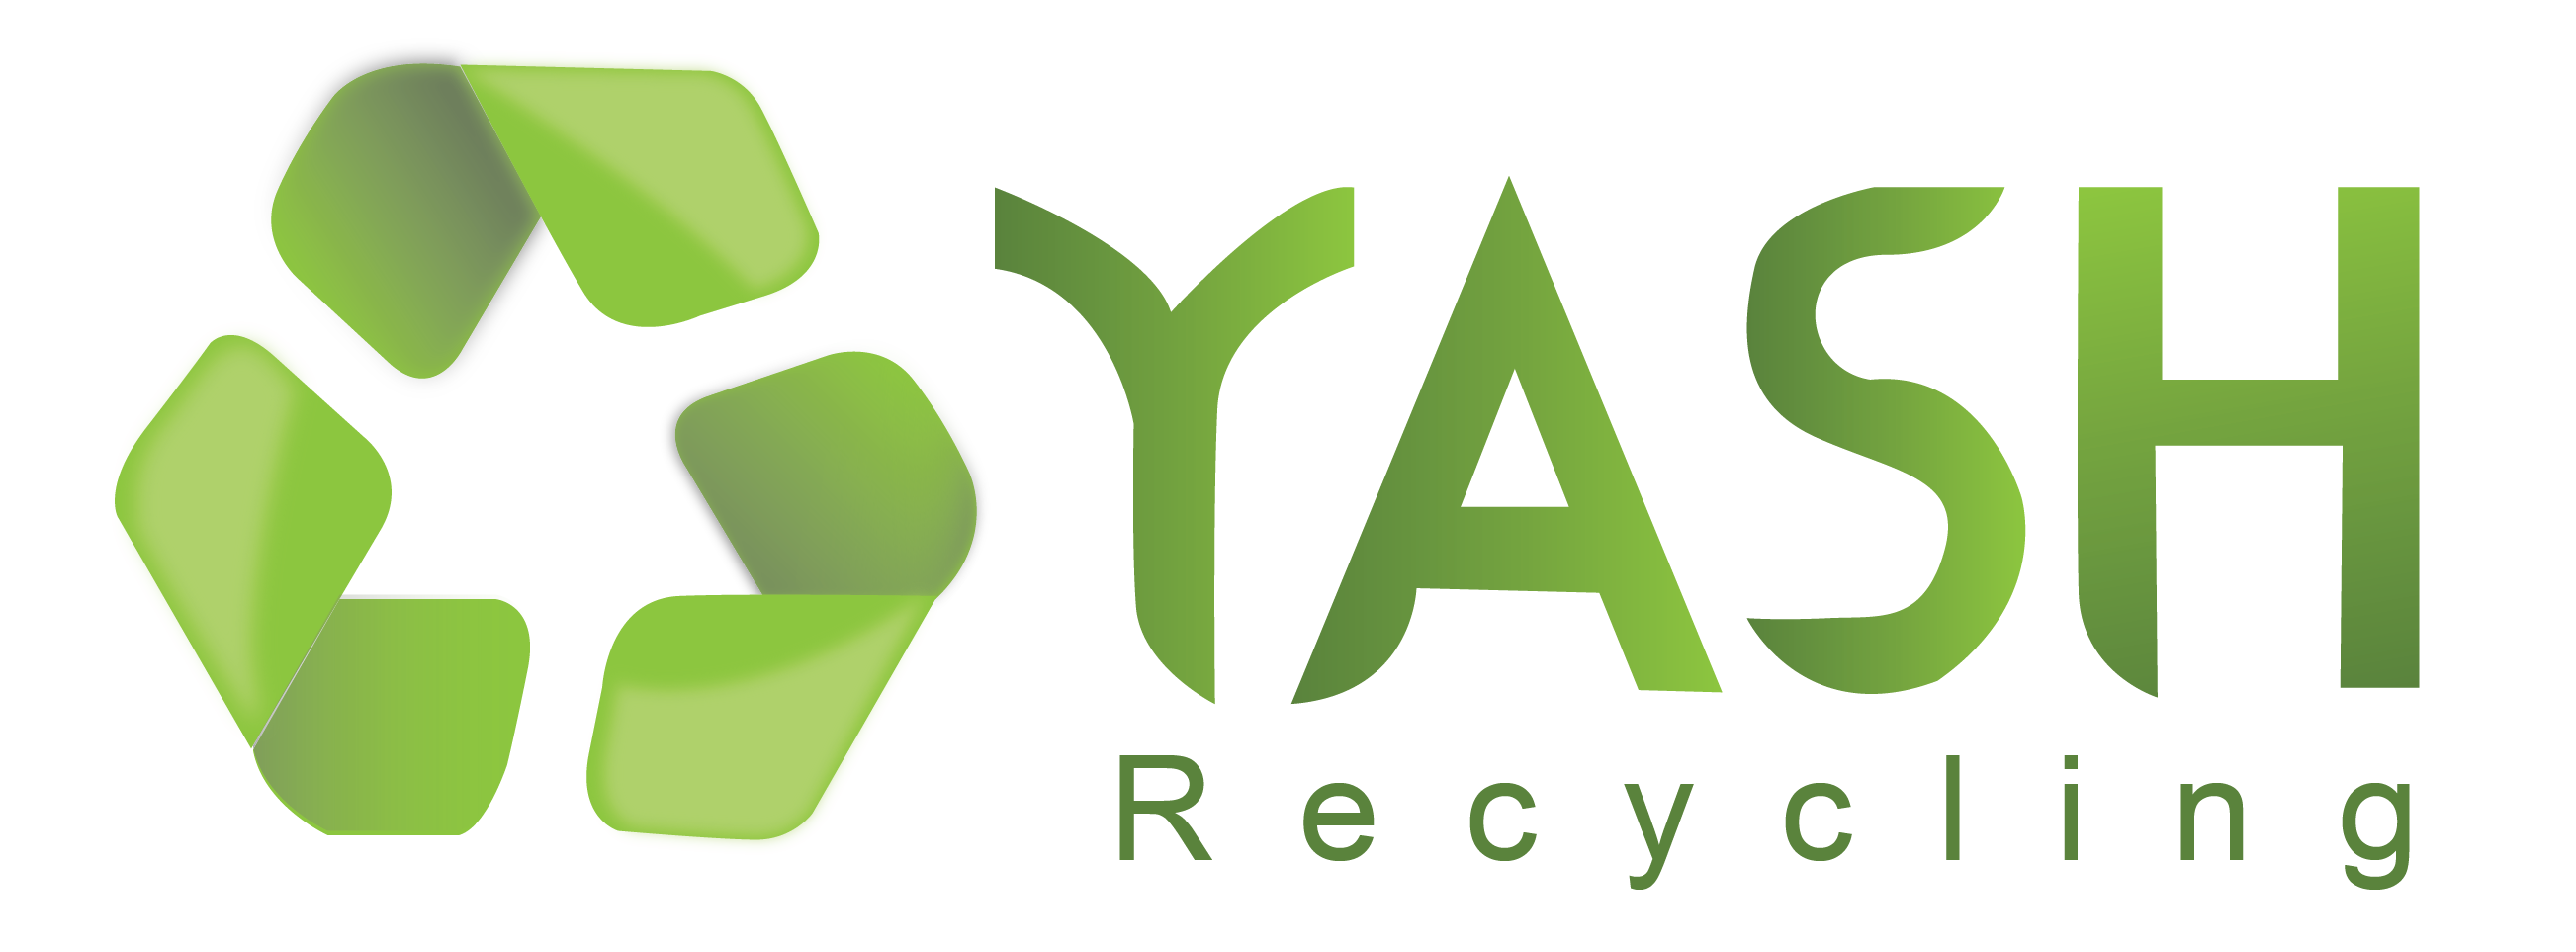 Yash Recycling